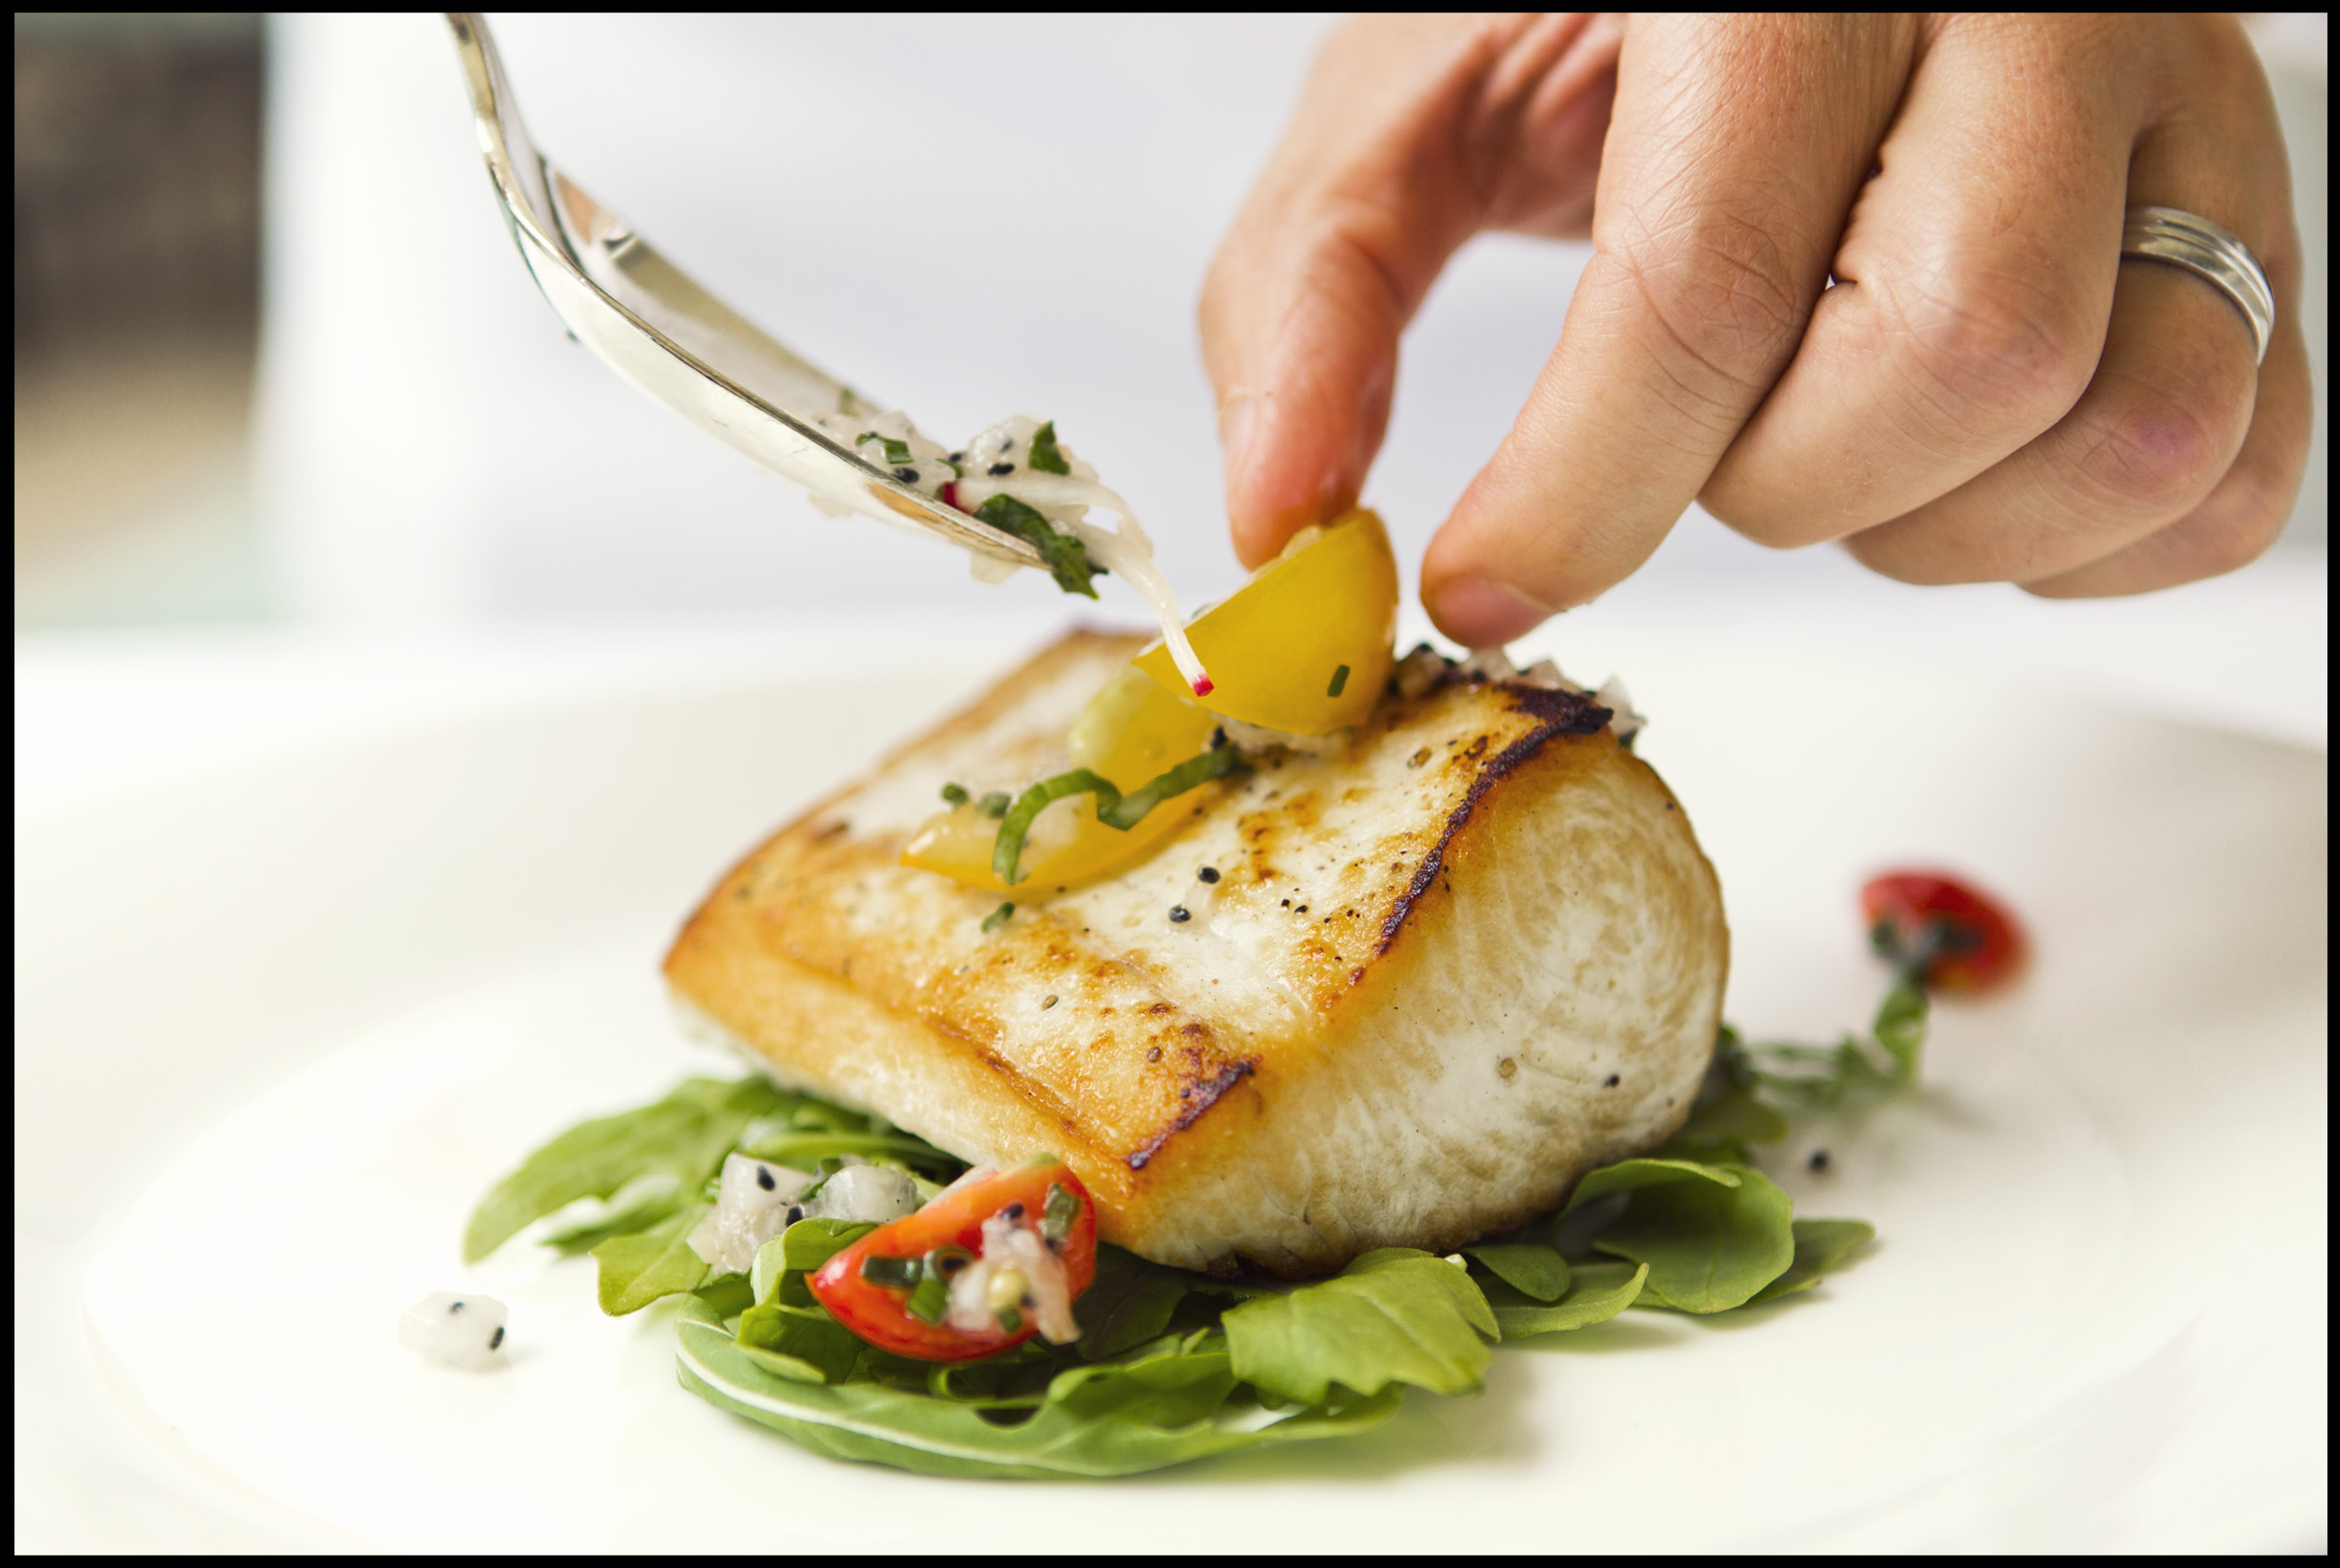 Four Seasons Maui executive chef Roger Stettler prepares a fresh fish dish at the resort.